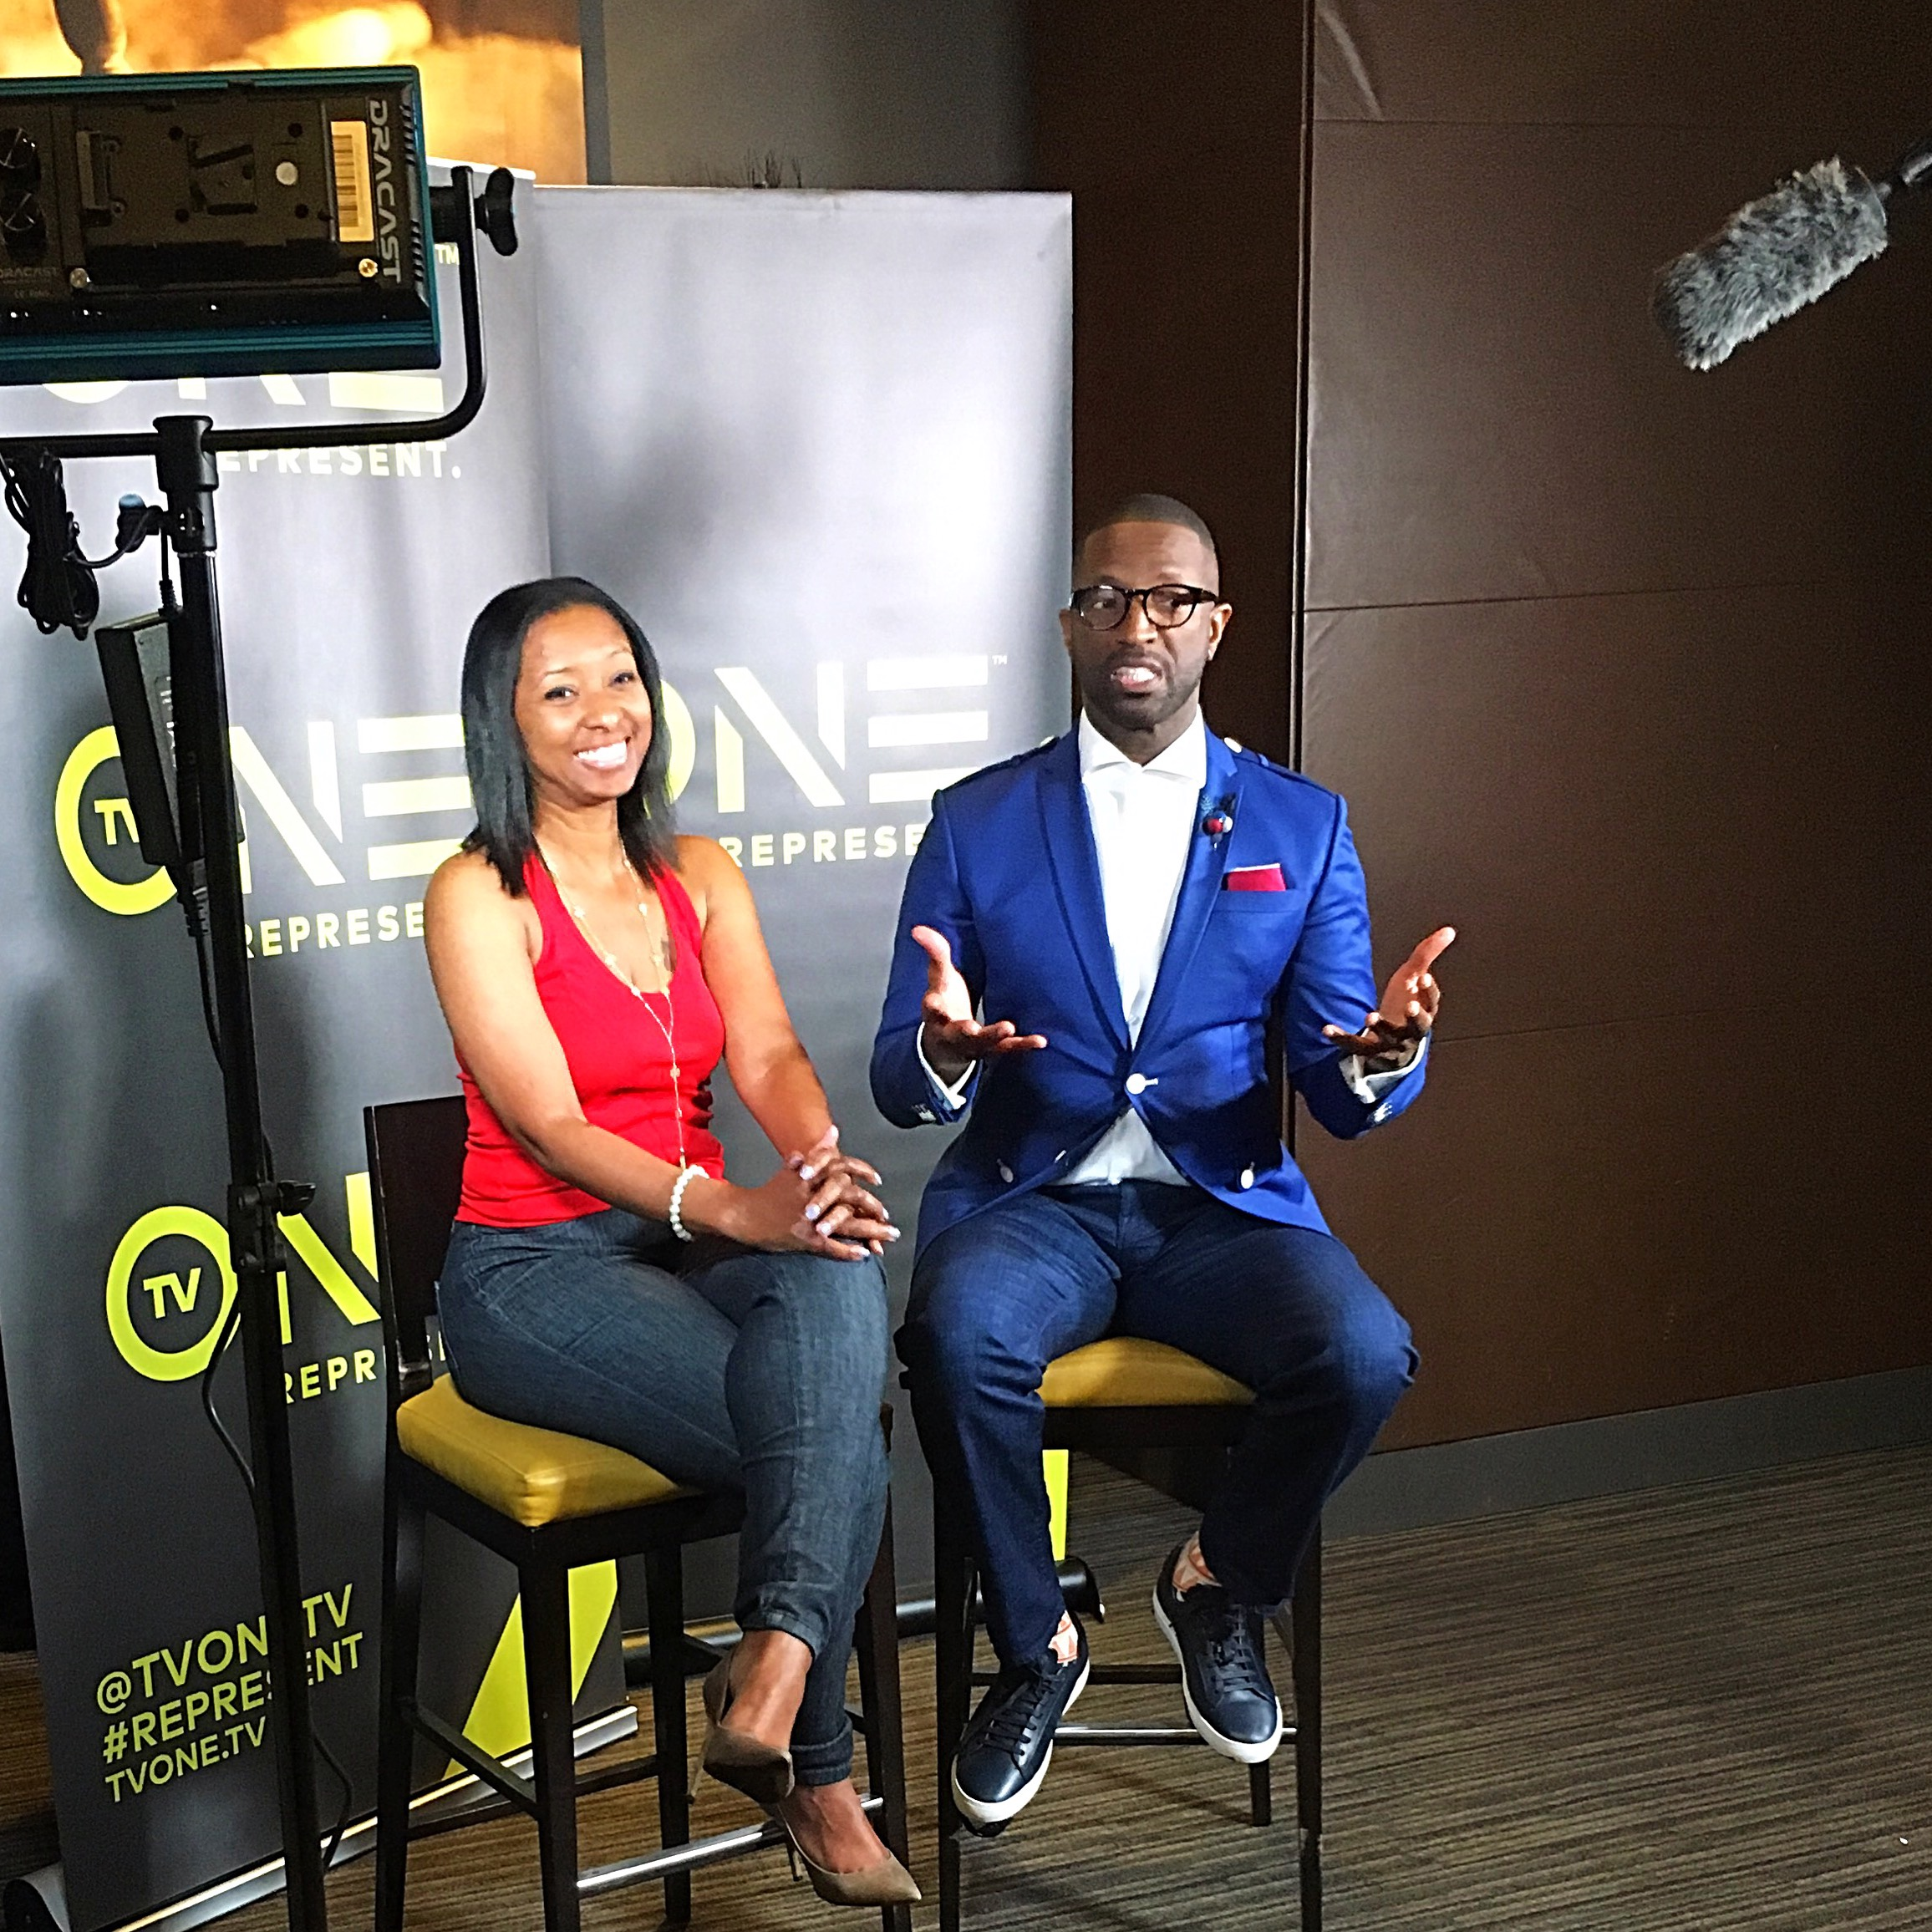 Rickey Smiley interview for his show on TVOne.